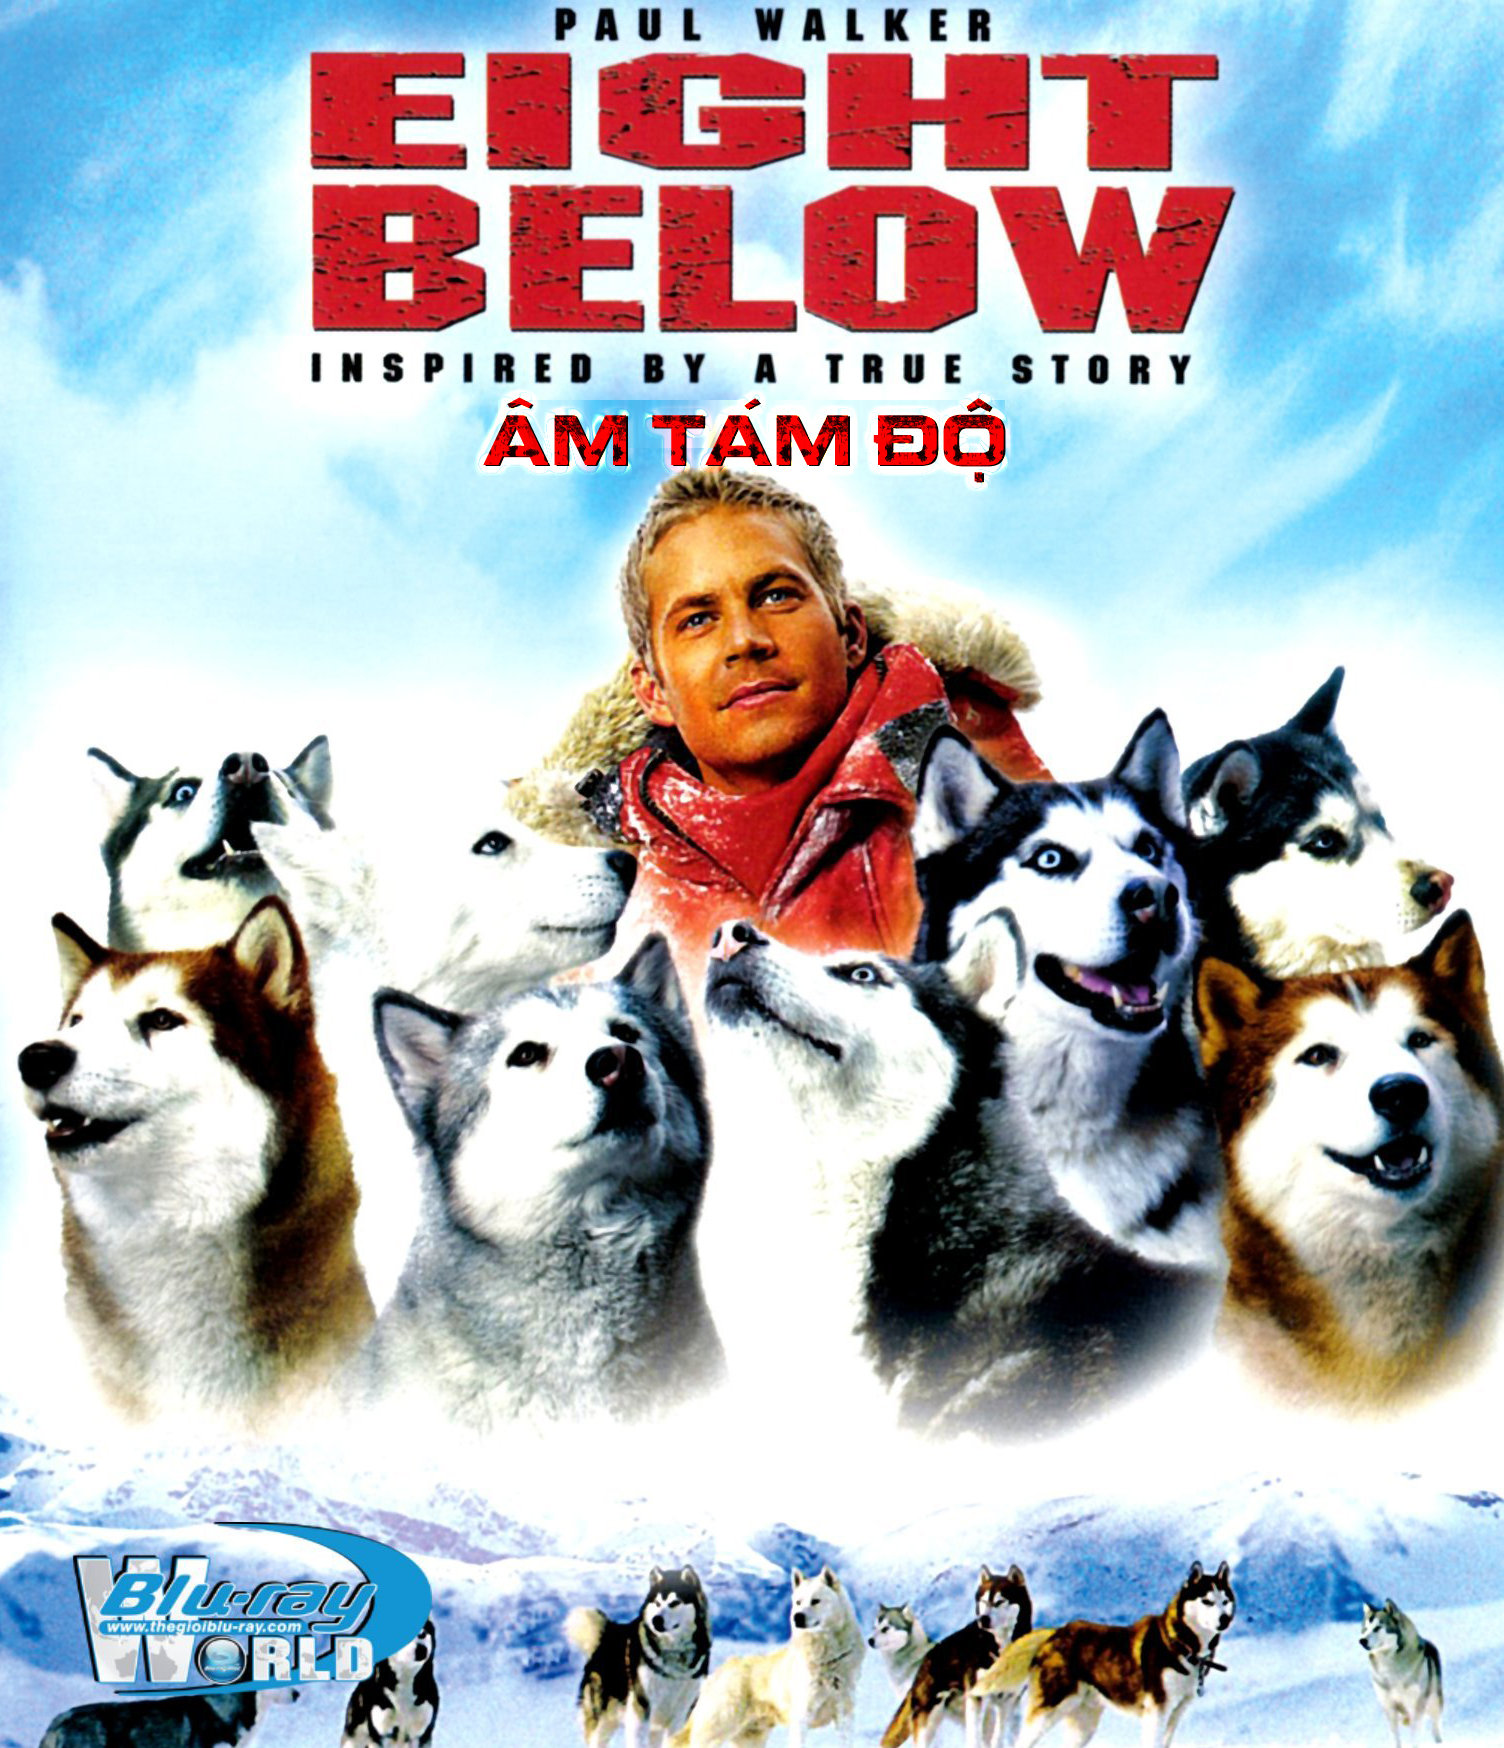 B1543. Eight Below - ÂM TÁM ĐỘ 2D 25G (DTS-HD MA 5.1)